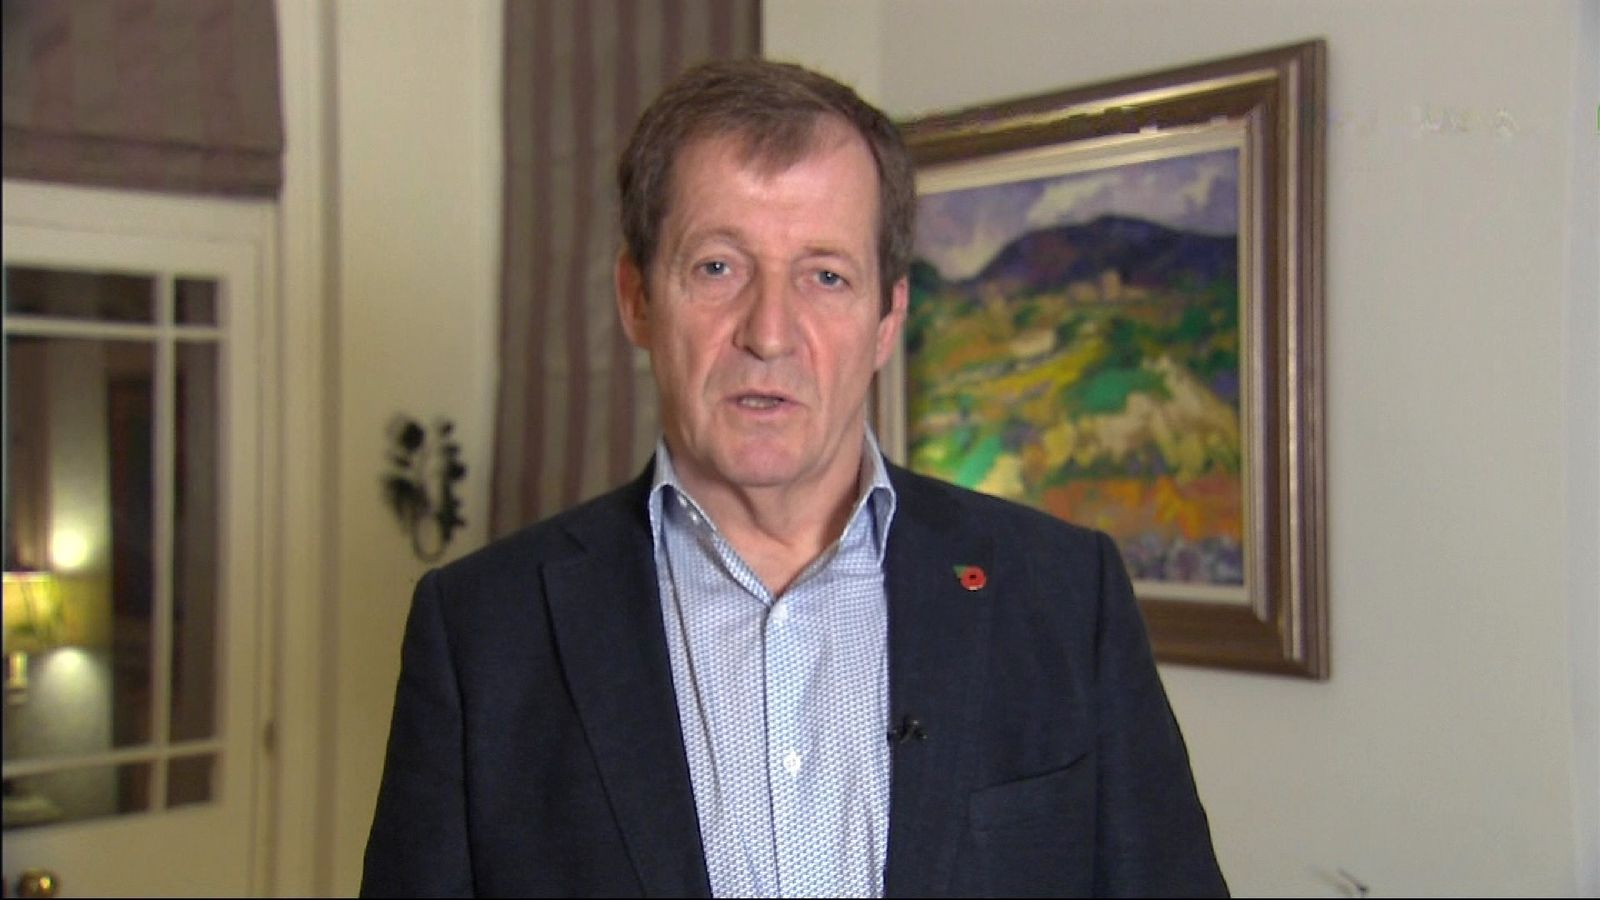 Alistair Campbell on Lego's decision not to run any more promotions on the Daily Mail